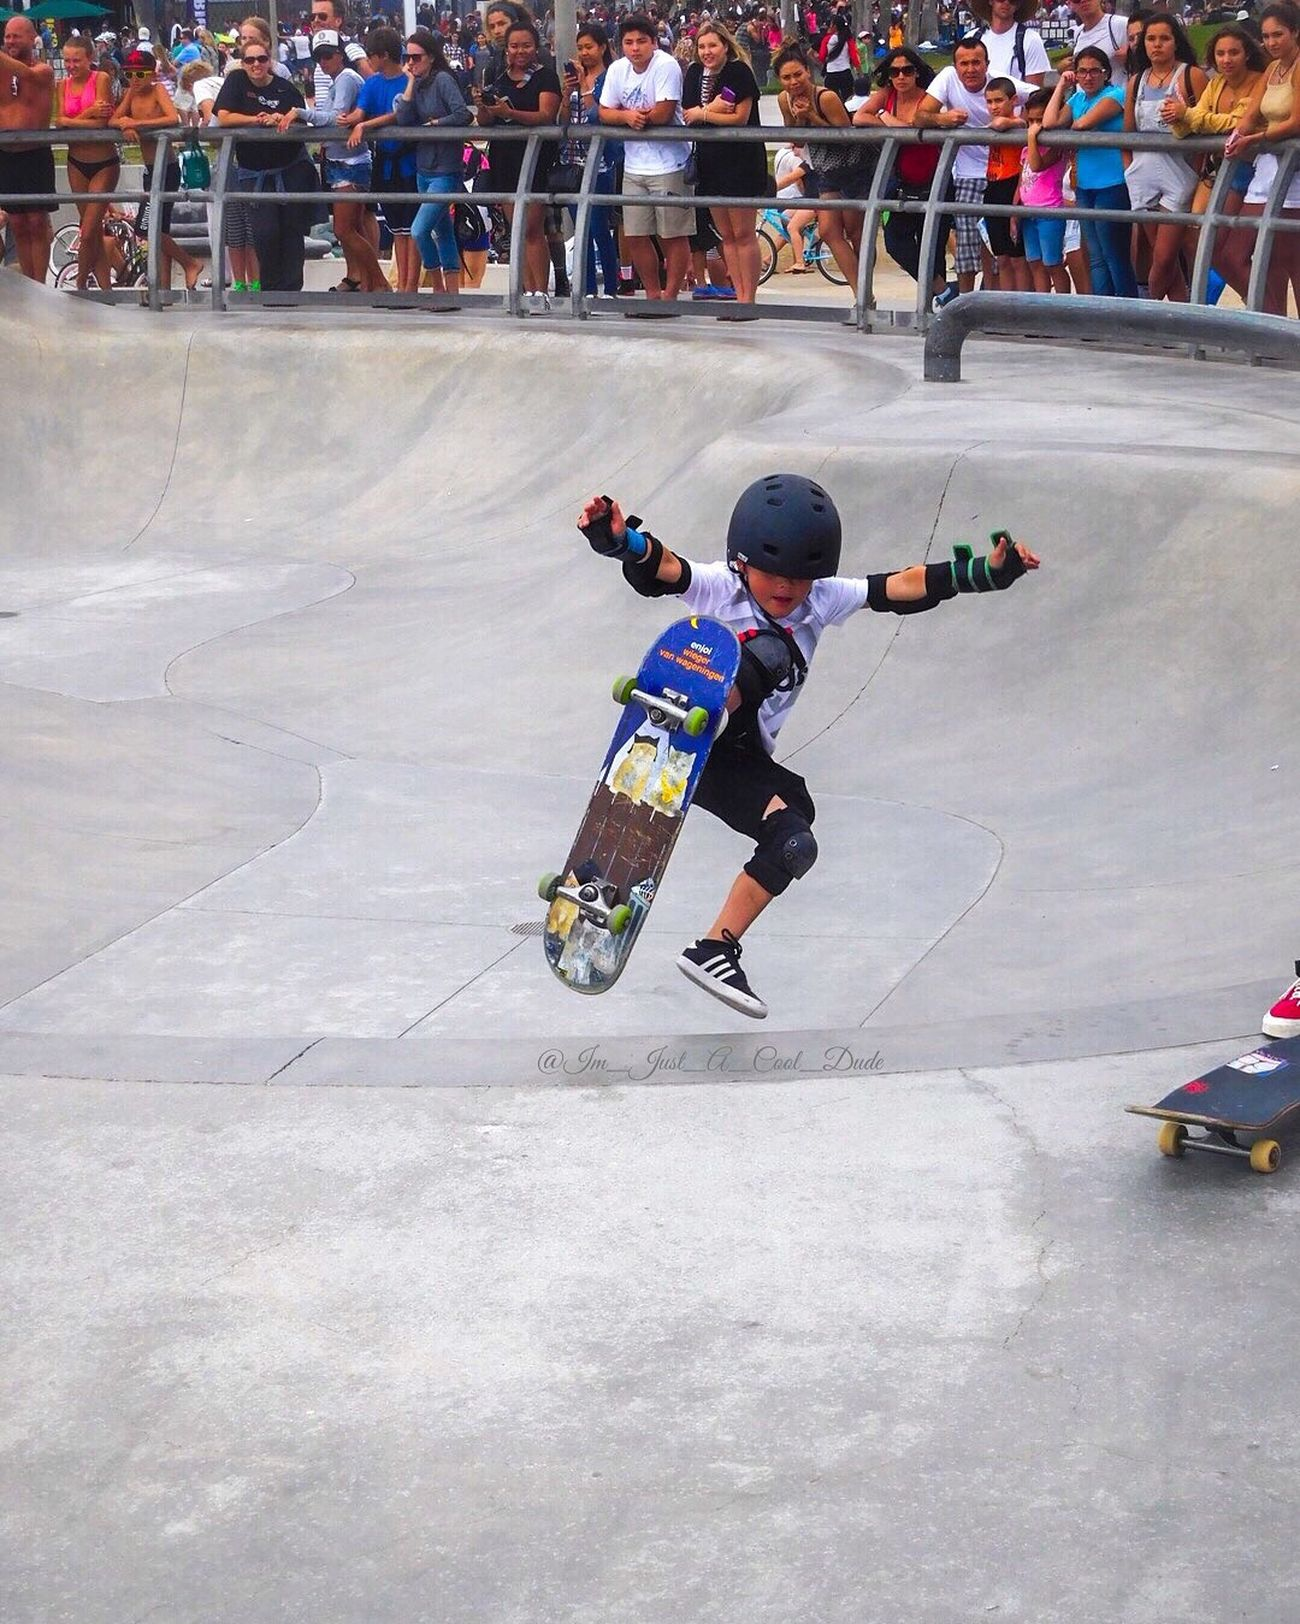 Start Em YOUNG Venice Beach Catching Air Skatepark Venicebeachskatepark Kids Are Awesome Skateboarding SkateboardLifeStyle Skateboardingisfun Skateboardphotography Talented